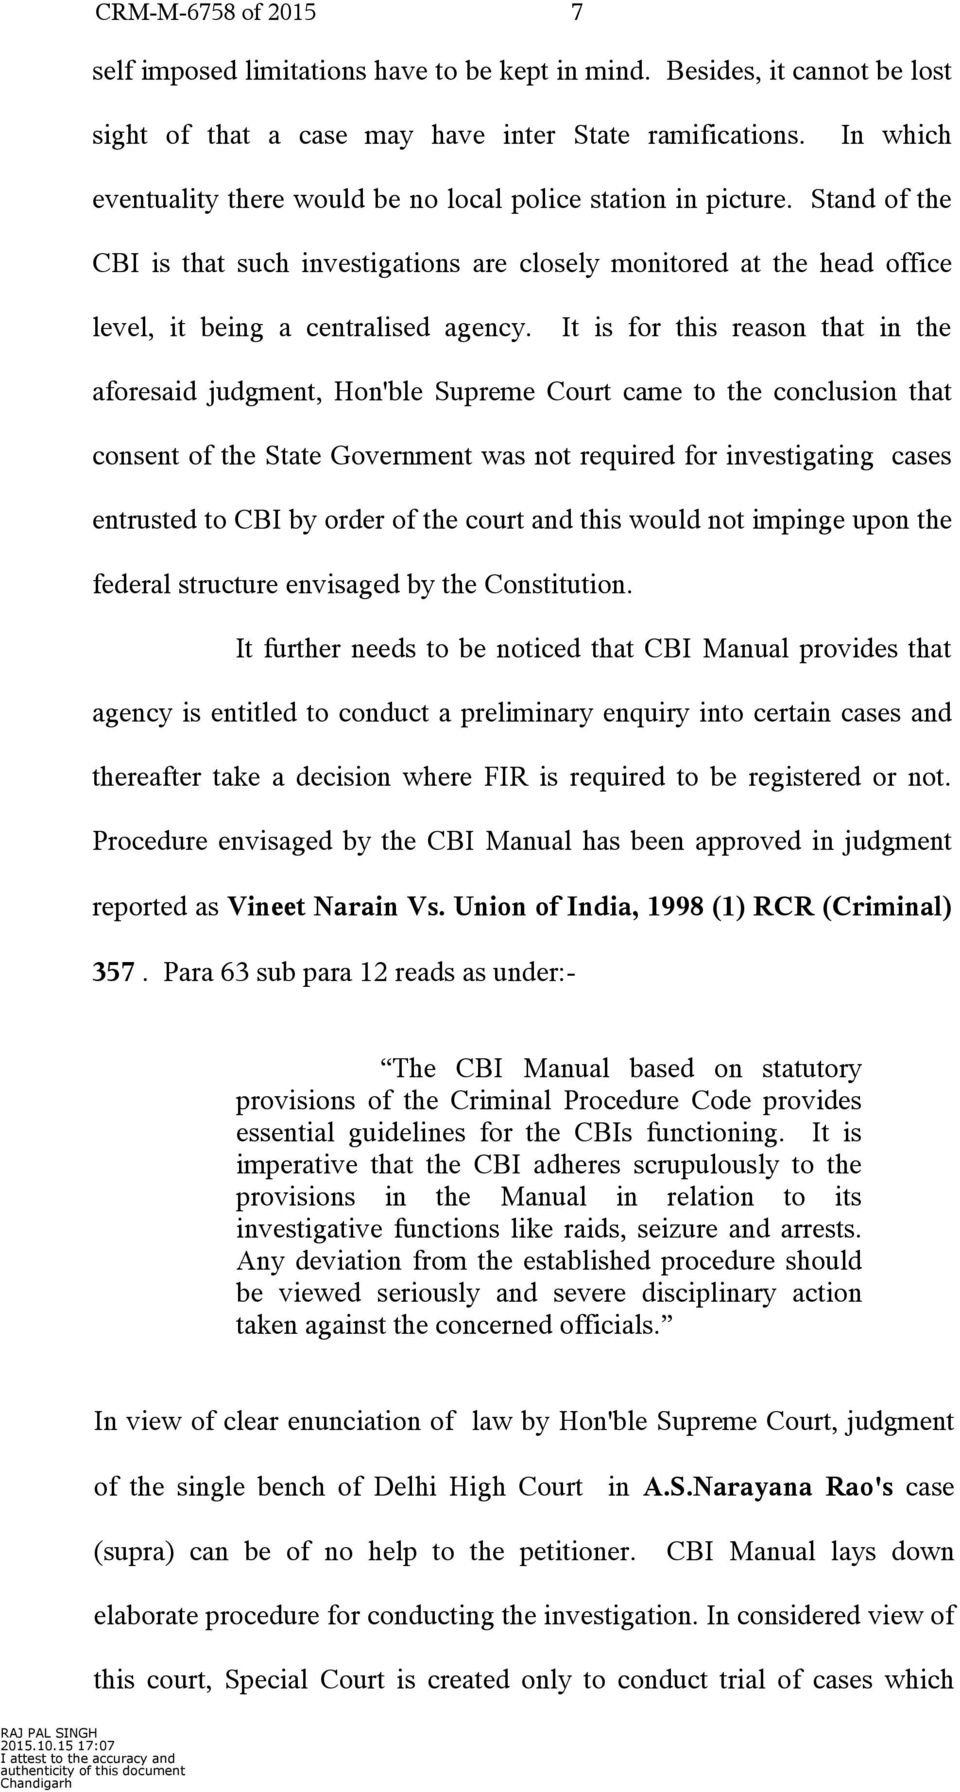 It is for this reason that in the aforesaid judgment, Hon'ble Supreme Court came to the conclusion that consent of the State Government was not required for investigating cases entrusted to CBI by